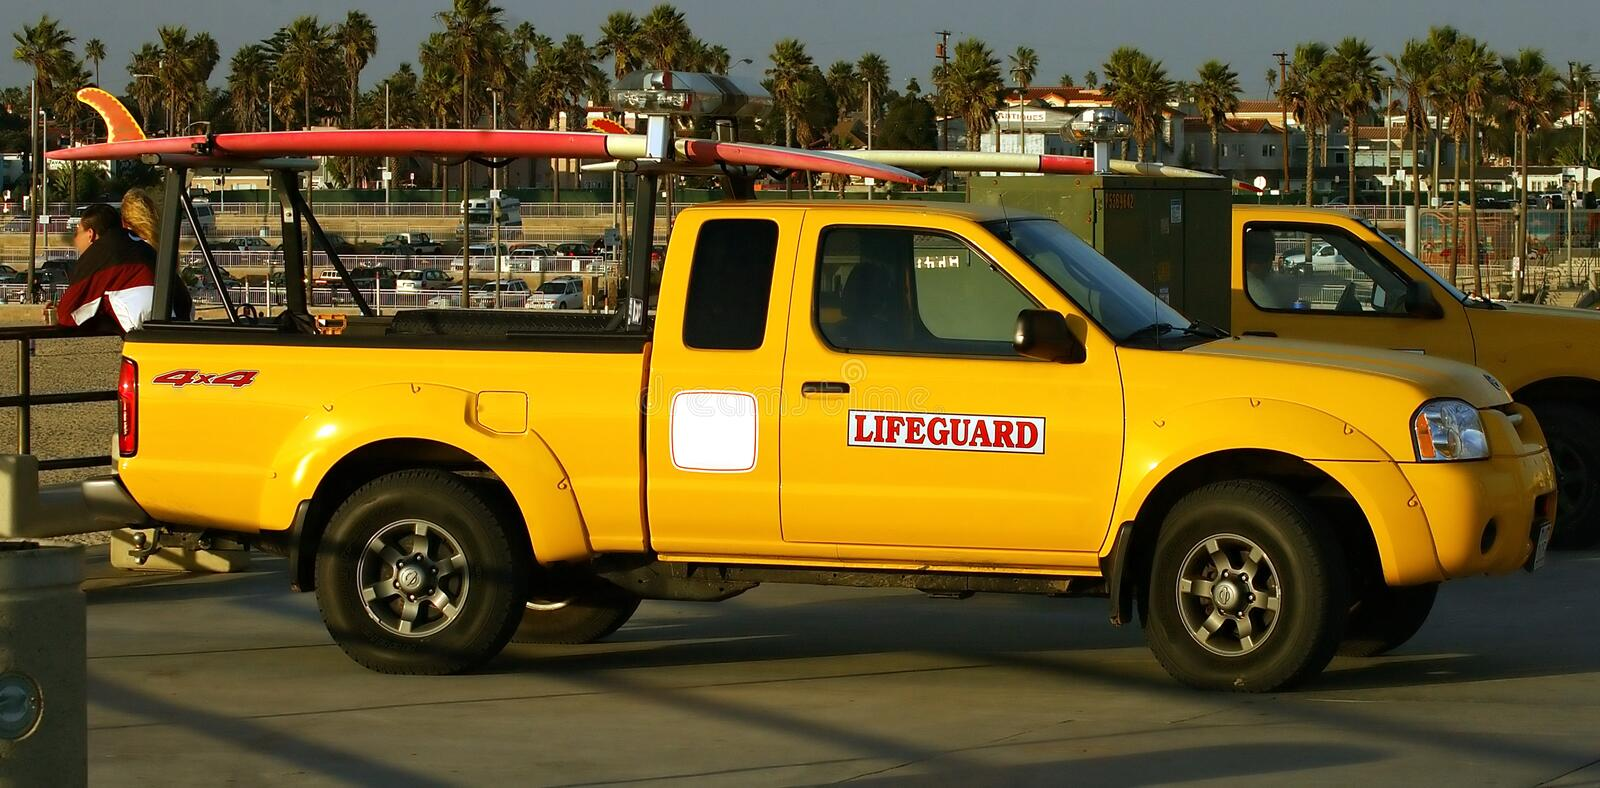 Download Lifegaurd Truck stock photo. Image of beach, transportation - 34726